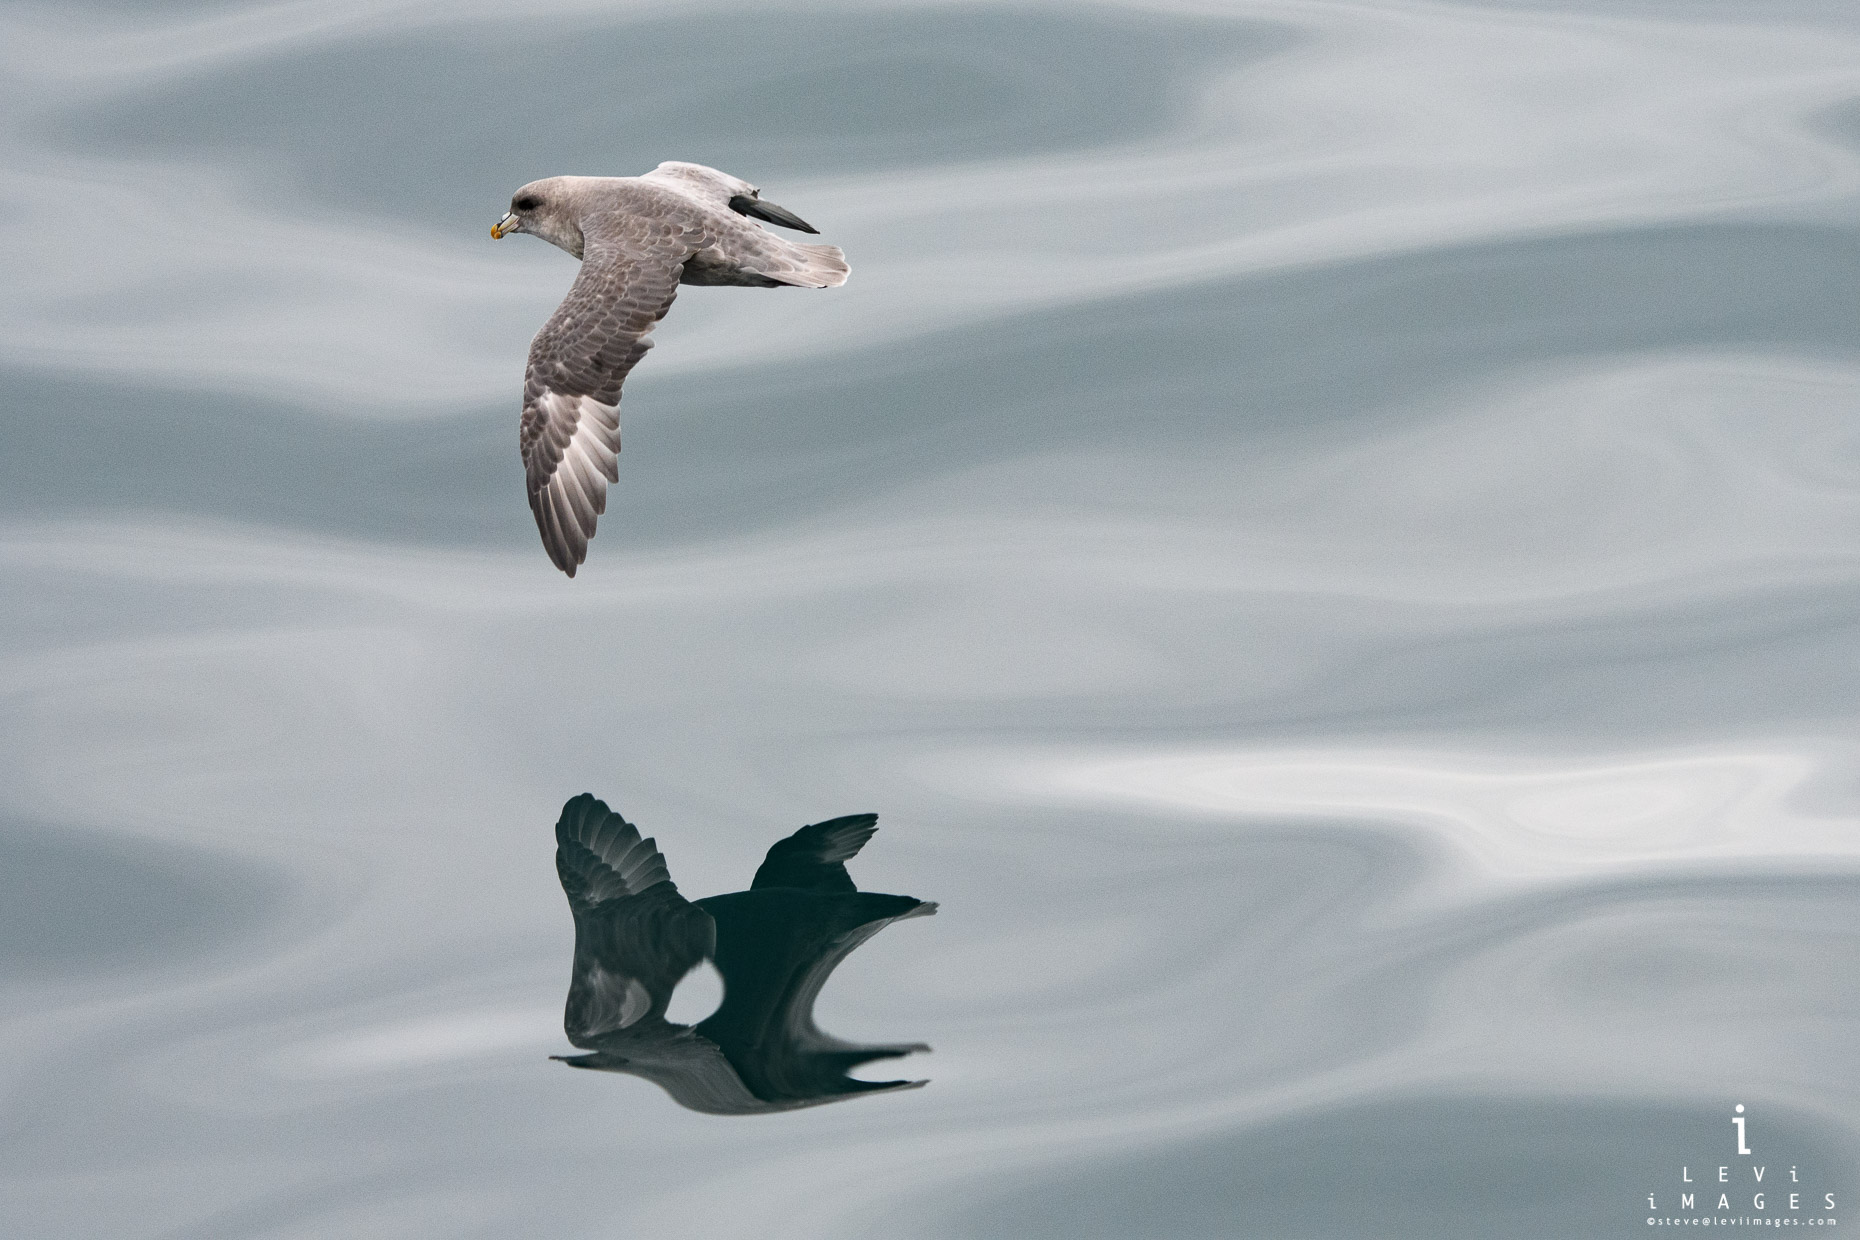 Northern fulmar (Fulmarus glacialis) in flight with reflection. Svalbard, Norway